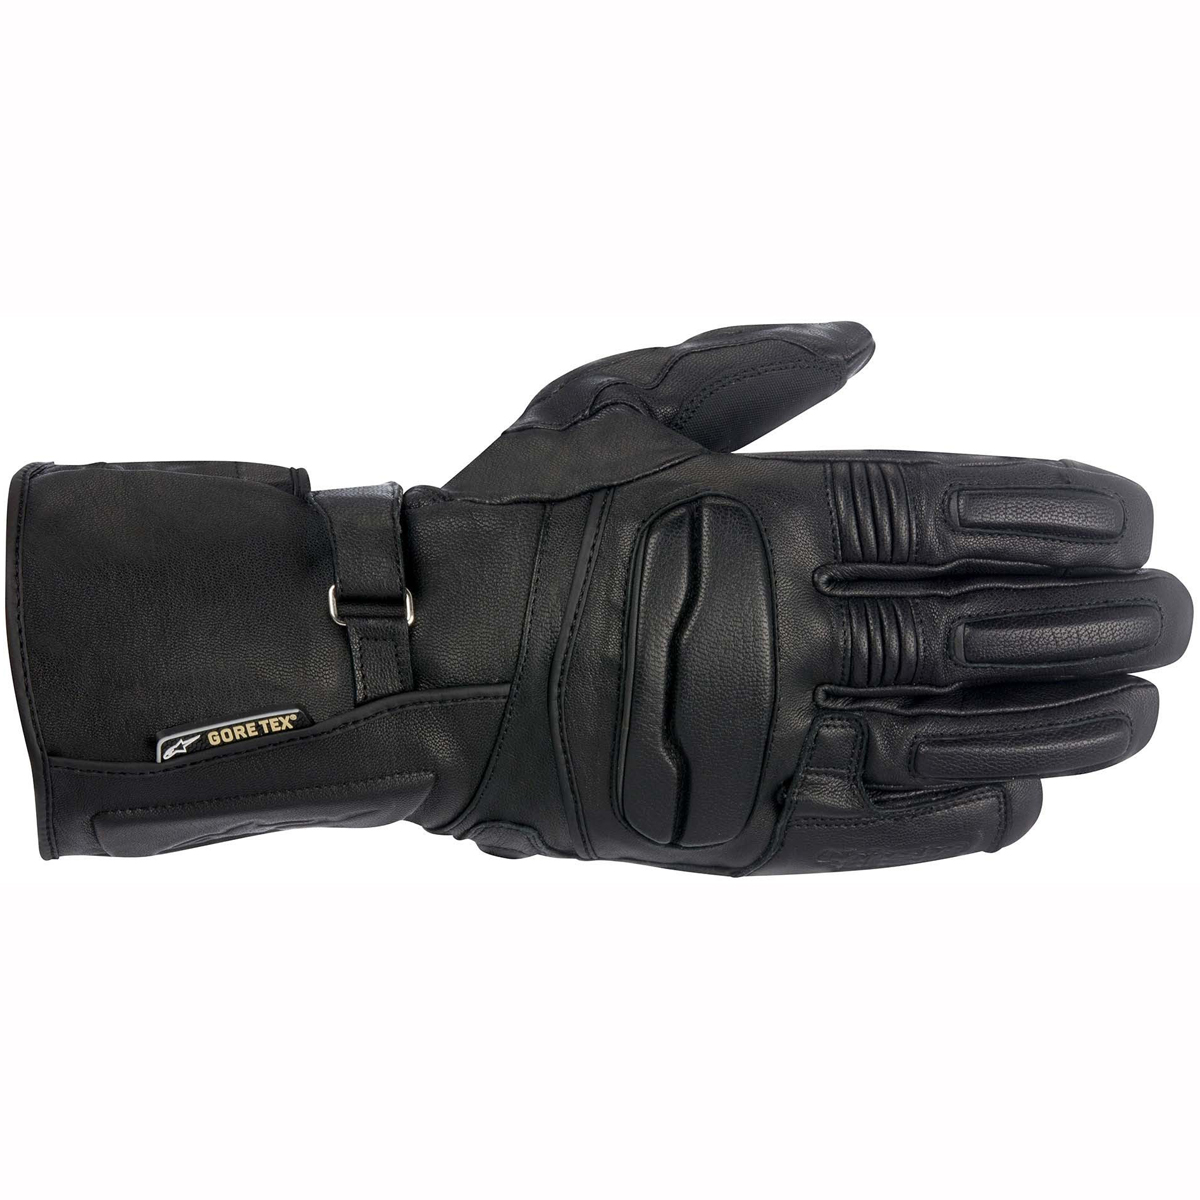 The Alpinestars Wr-1 Gore-Tex Gloves - One of the Top 10 warmest motorcycle gloves ideal for Winter riding